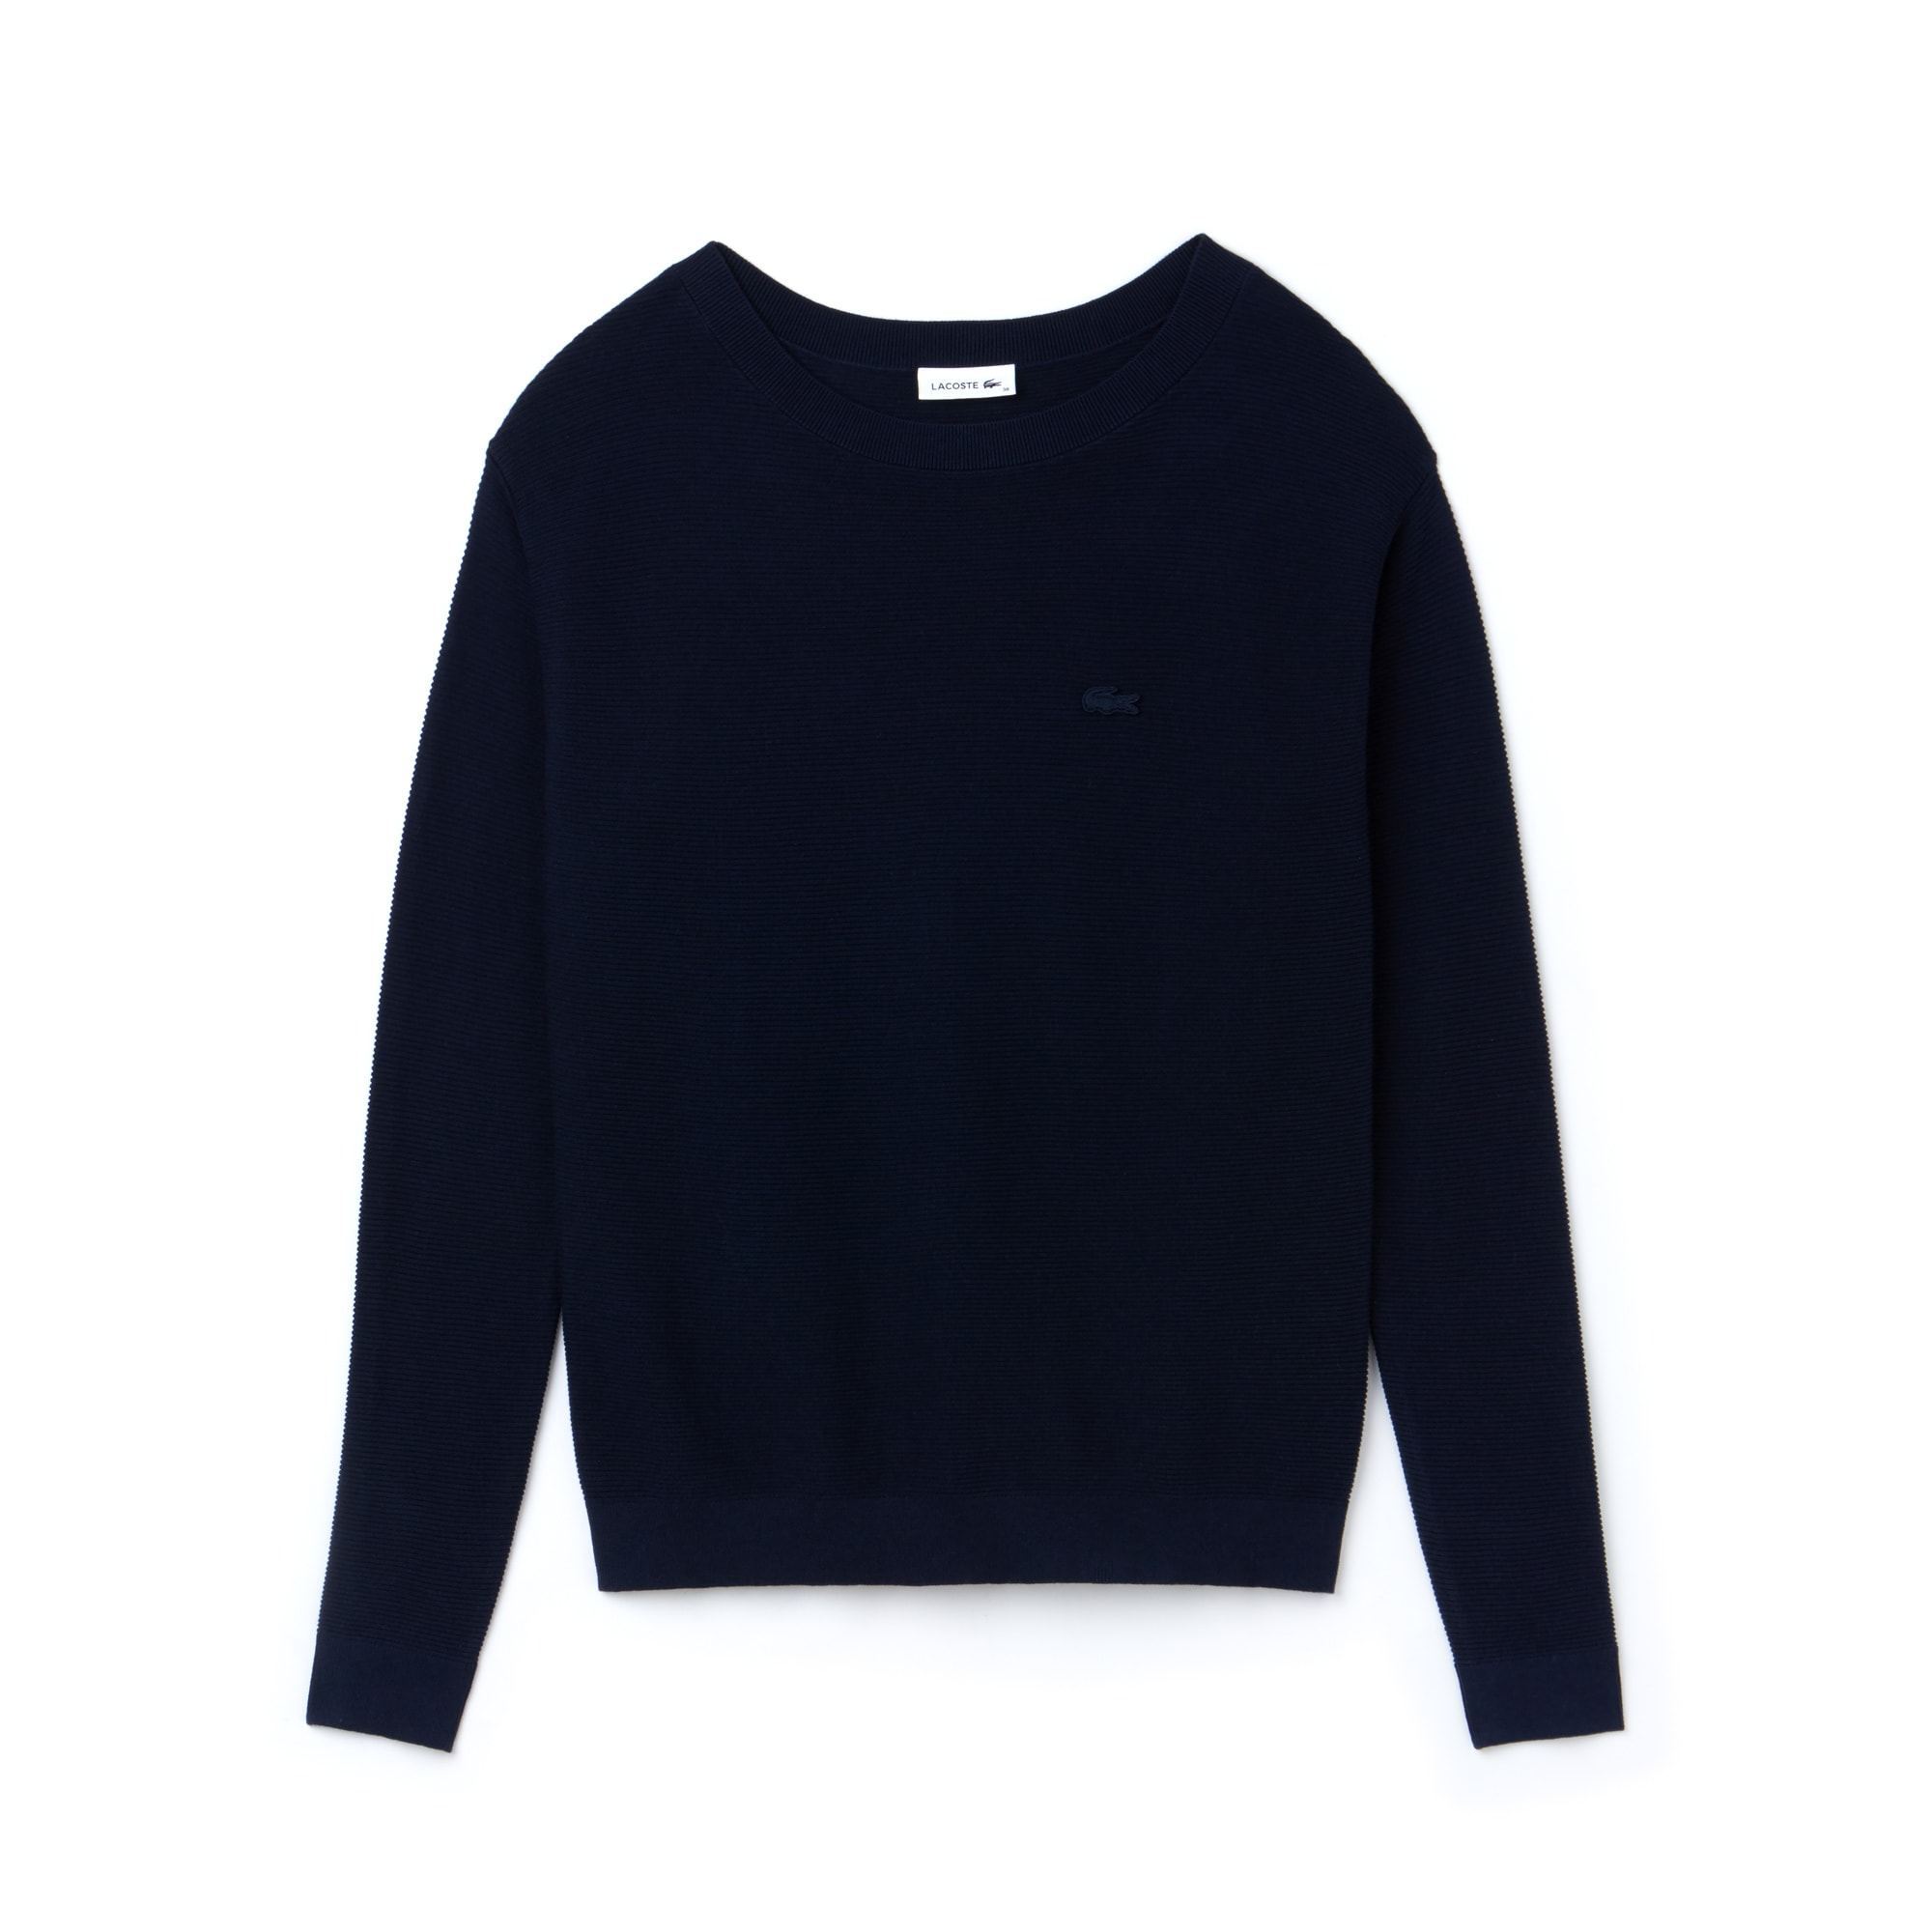 Women's Boat Neck Seed Stitch Cotton Sweater